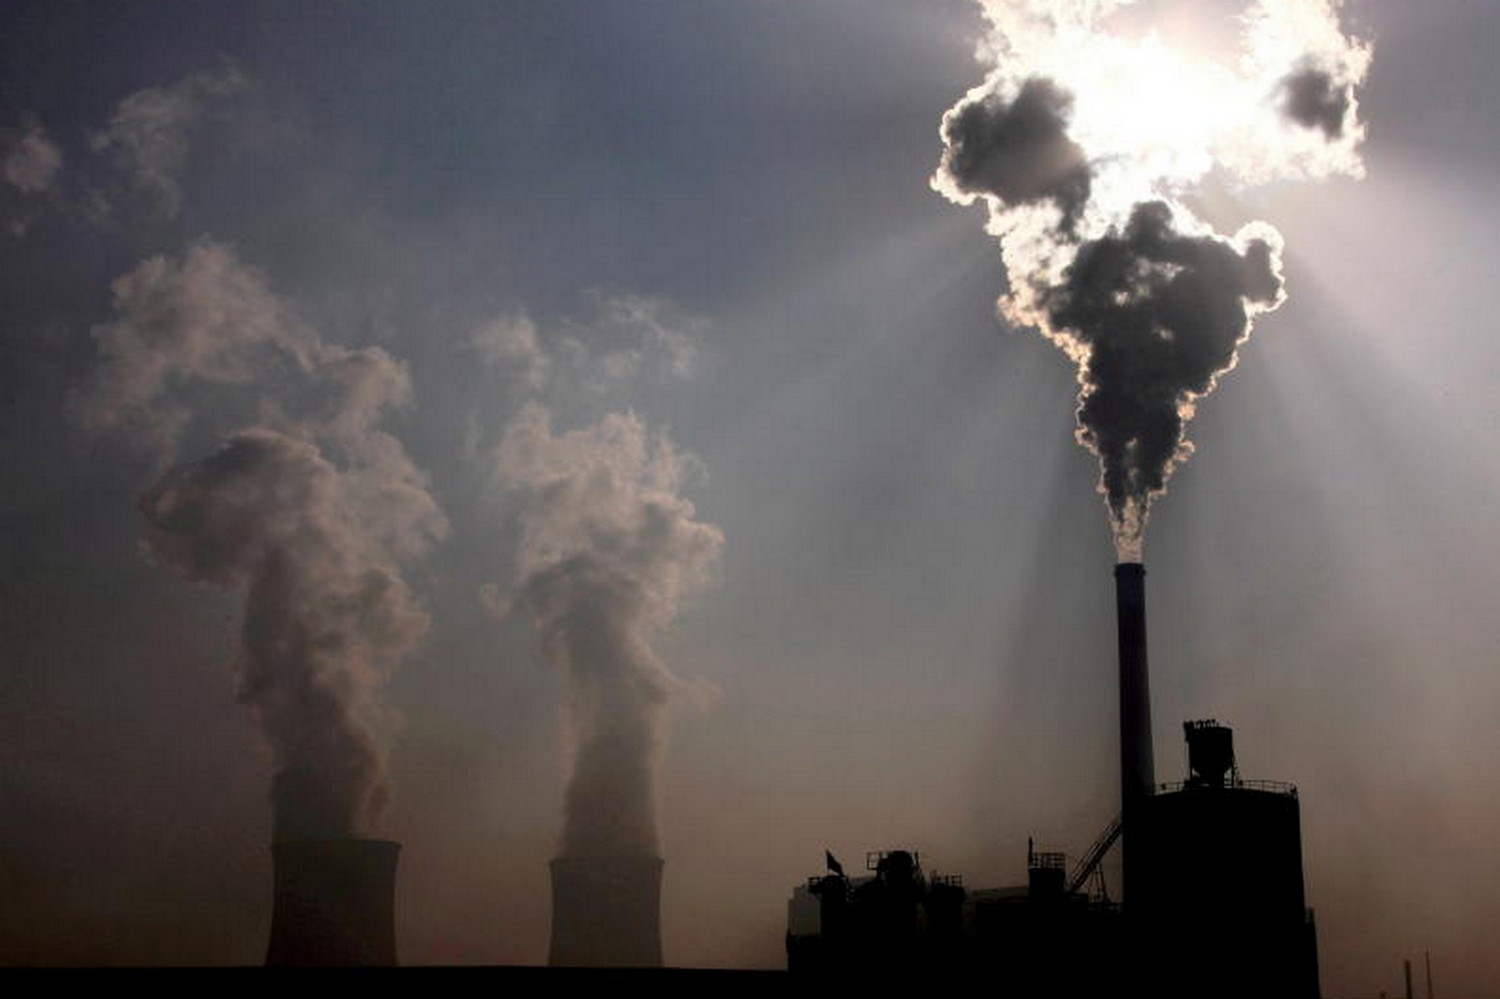 China's energy crunch triggers alarm, pleas for more coal